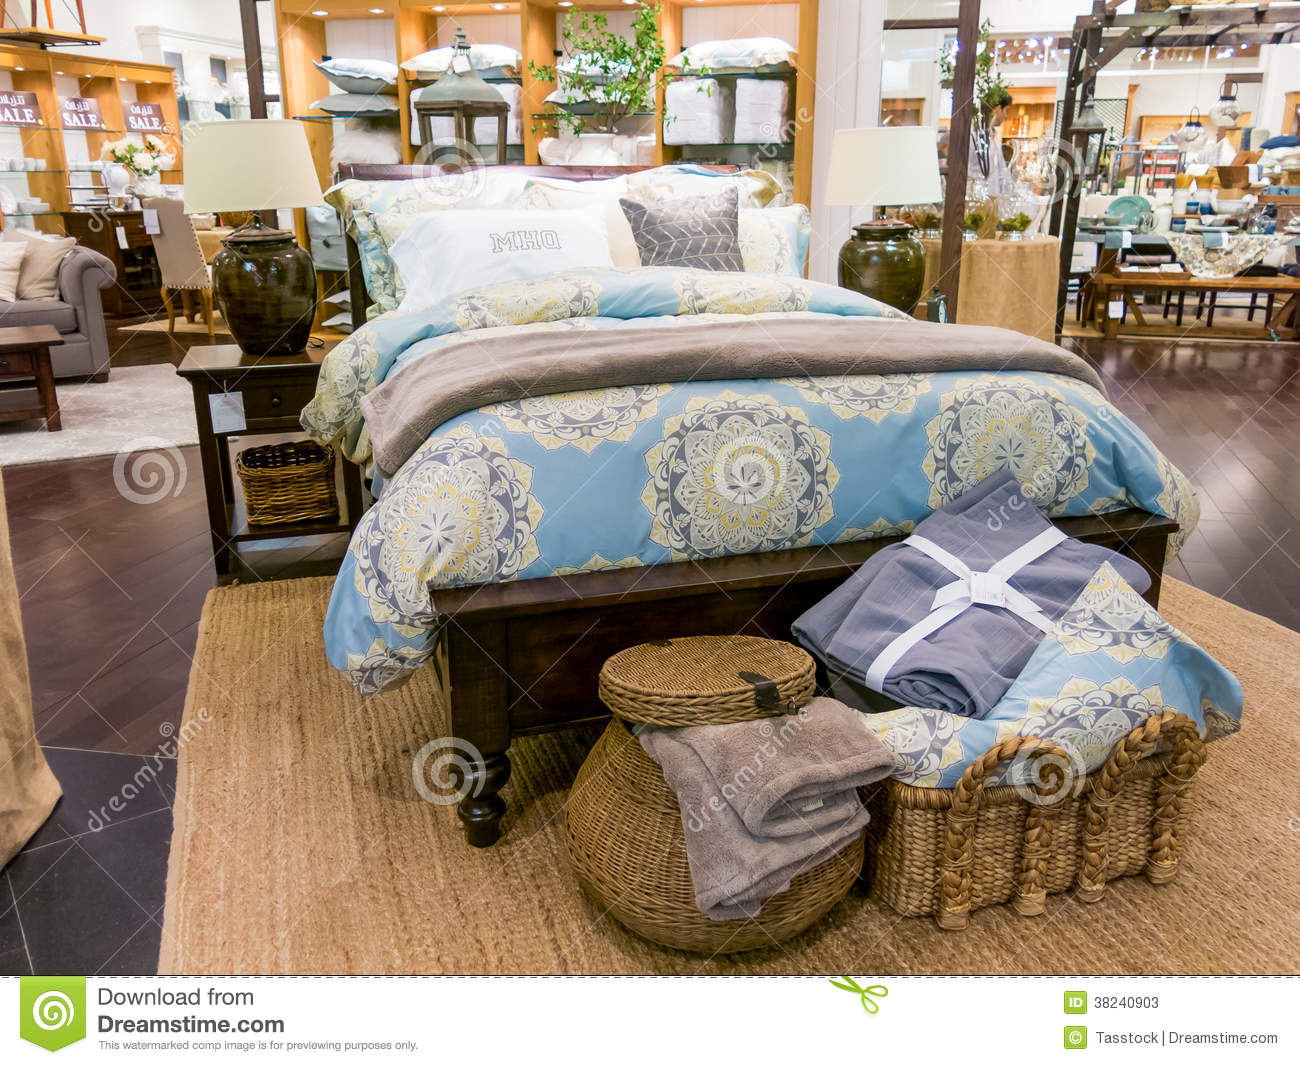 Home decor store in dubai mall editorial stock photo for House accessories stores